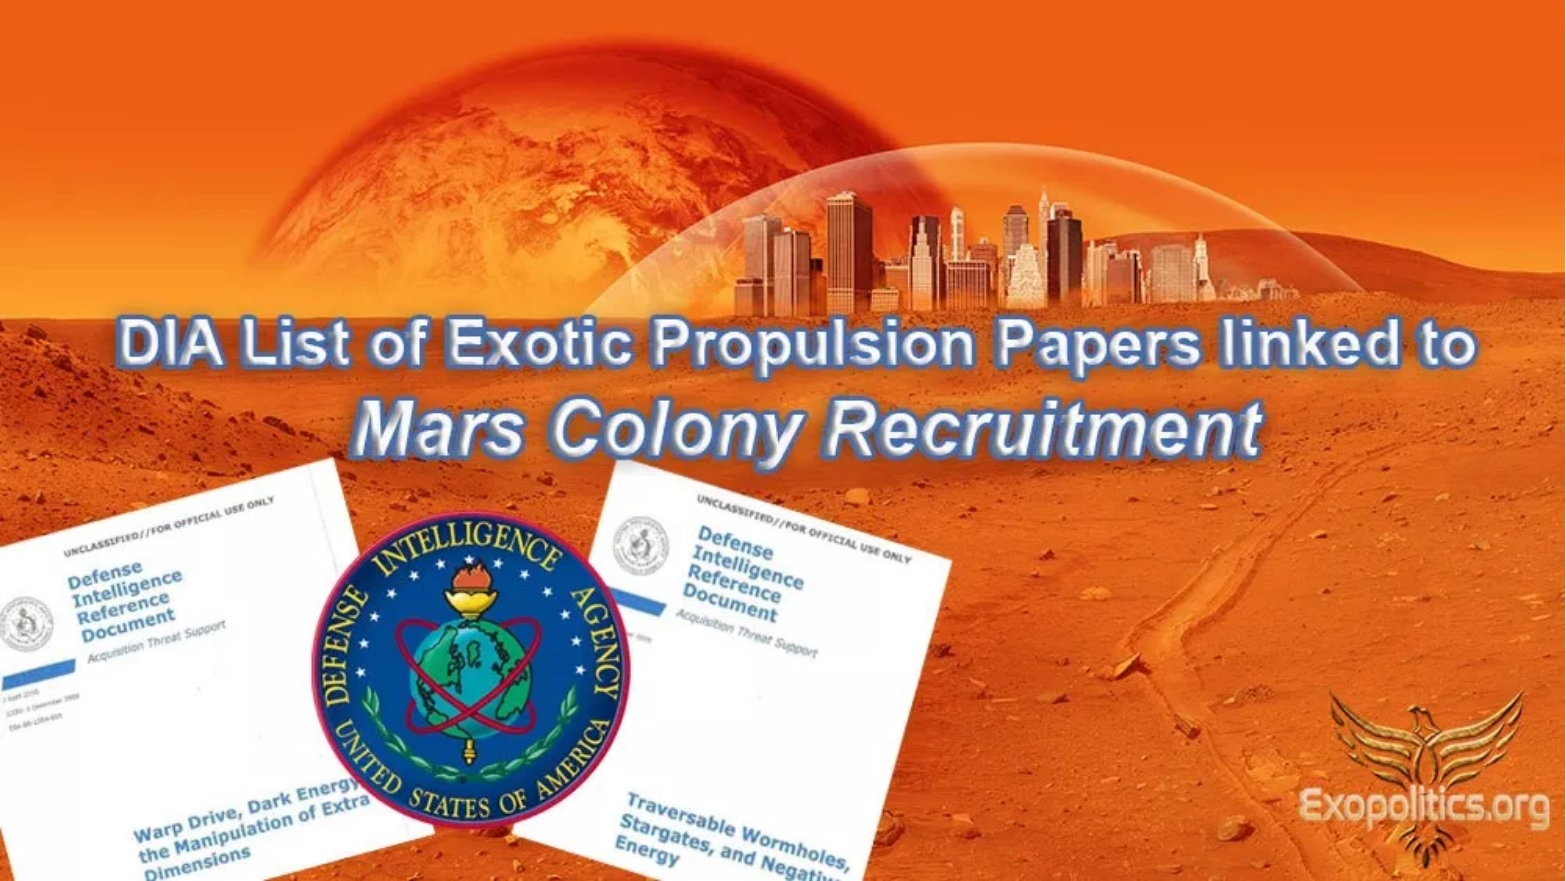 Liste de documents de Propulsion exotique DIA liée au recrutement de colonie de Mars (Laura Magdalene Eisenhower, Michael Salla)